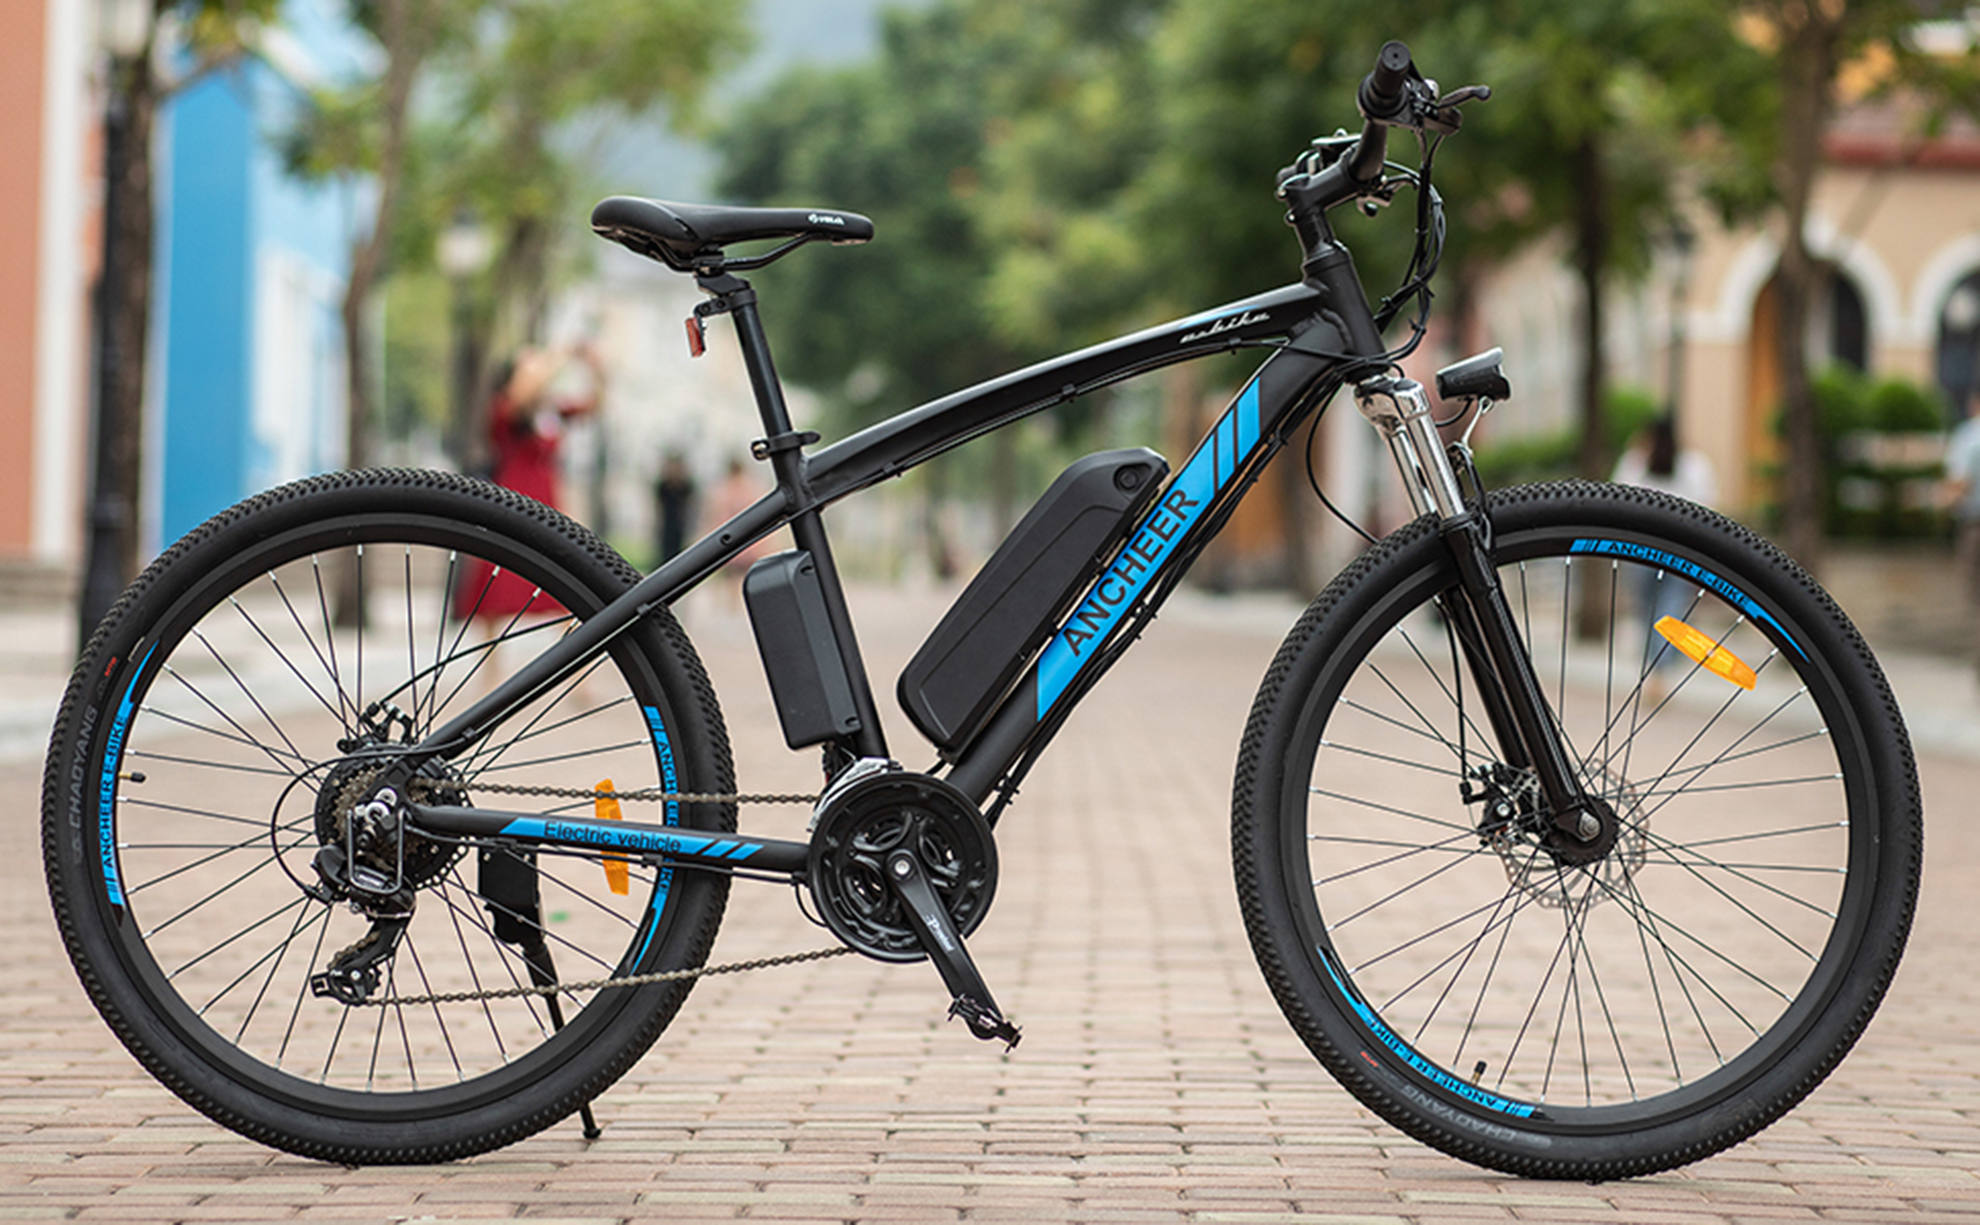 Ancheer E-bikes Brand Overview